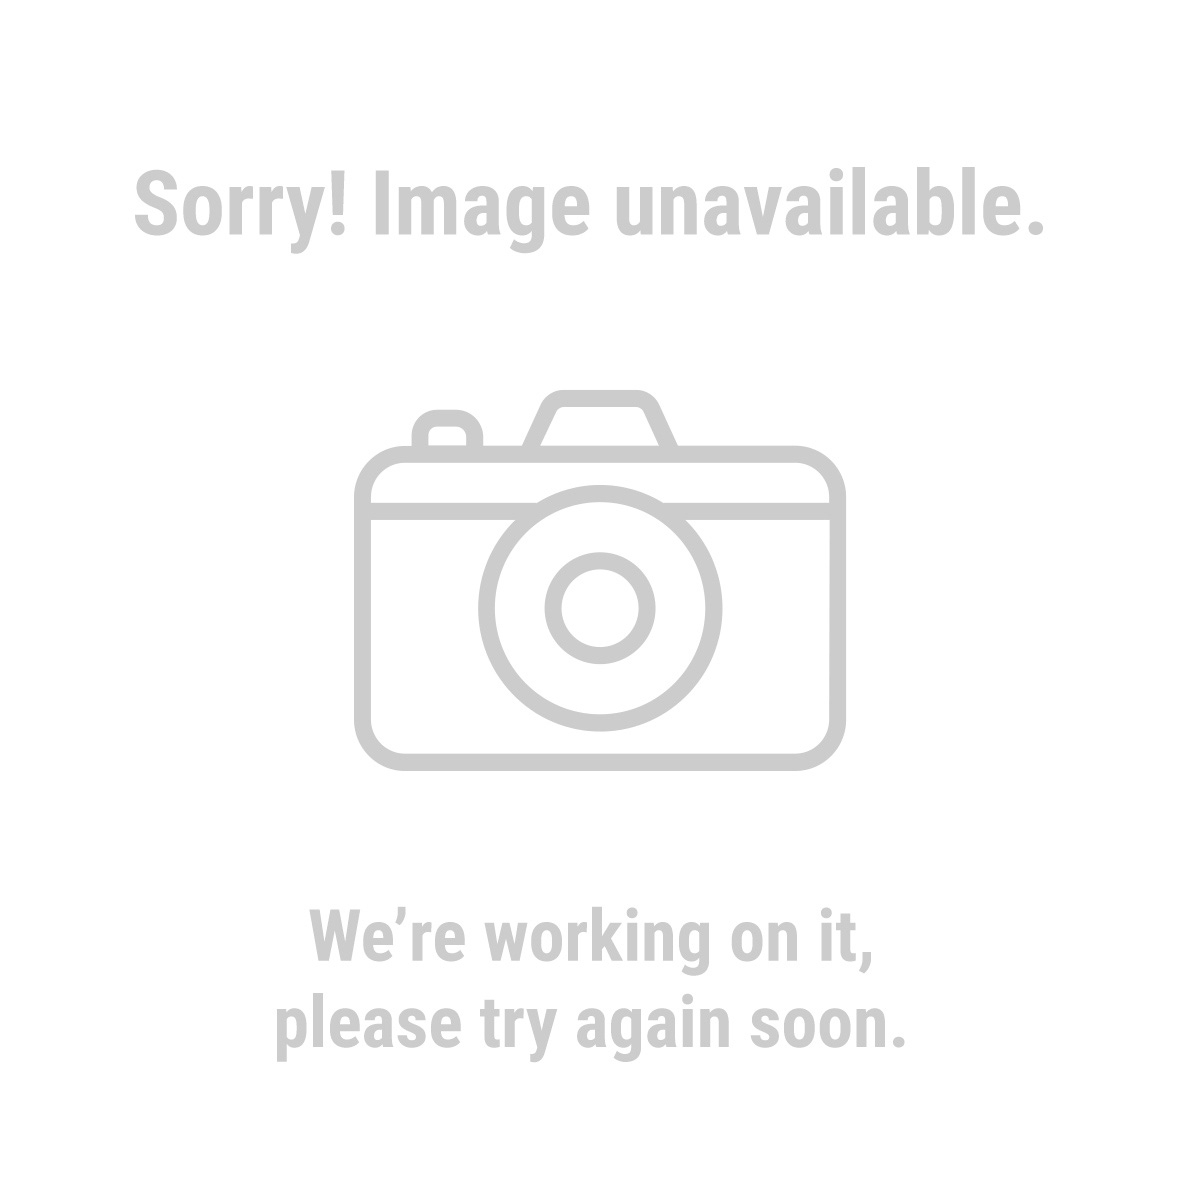 HFT® 39343 150 Ft. Extension Cord Reel